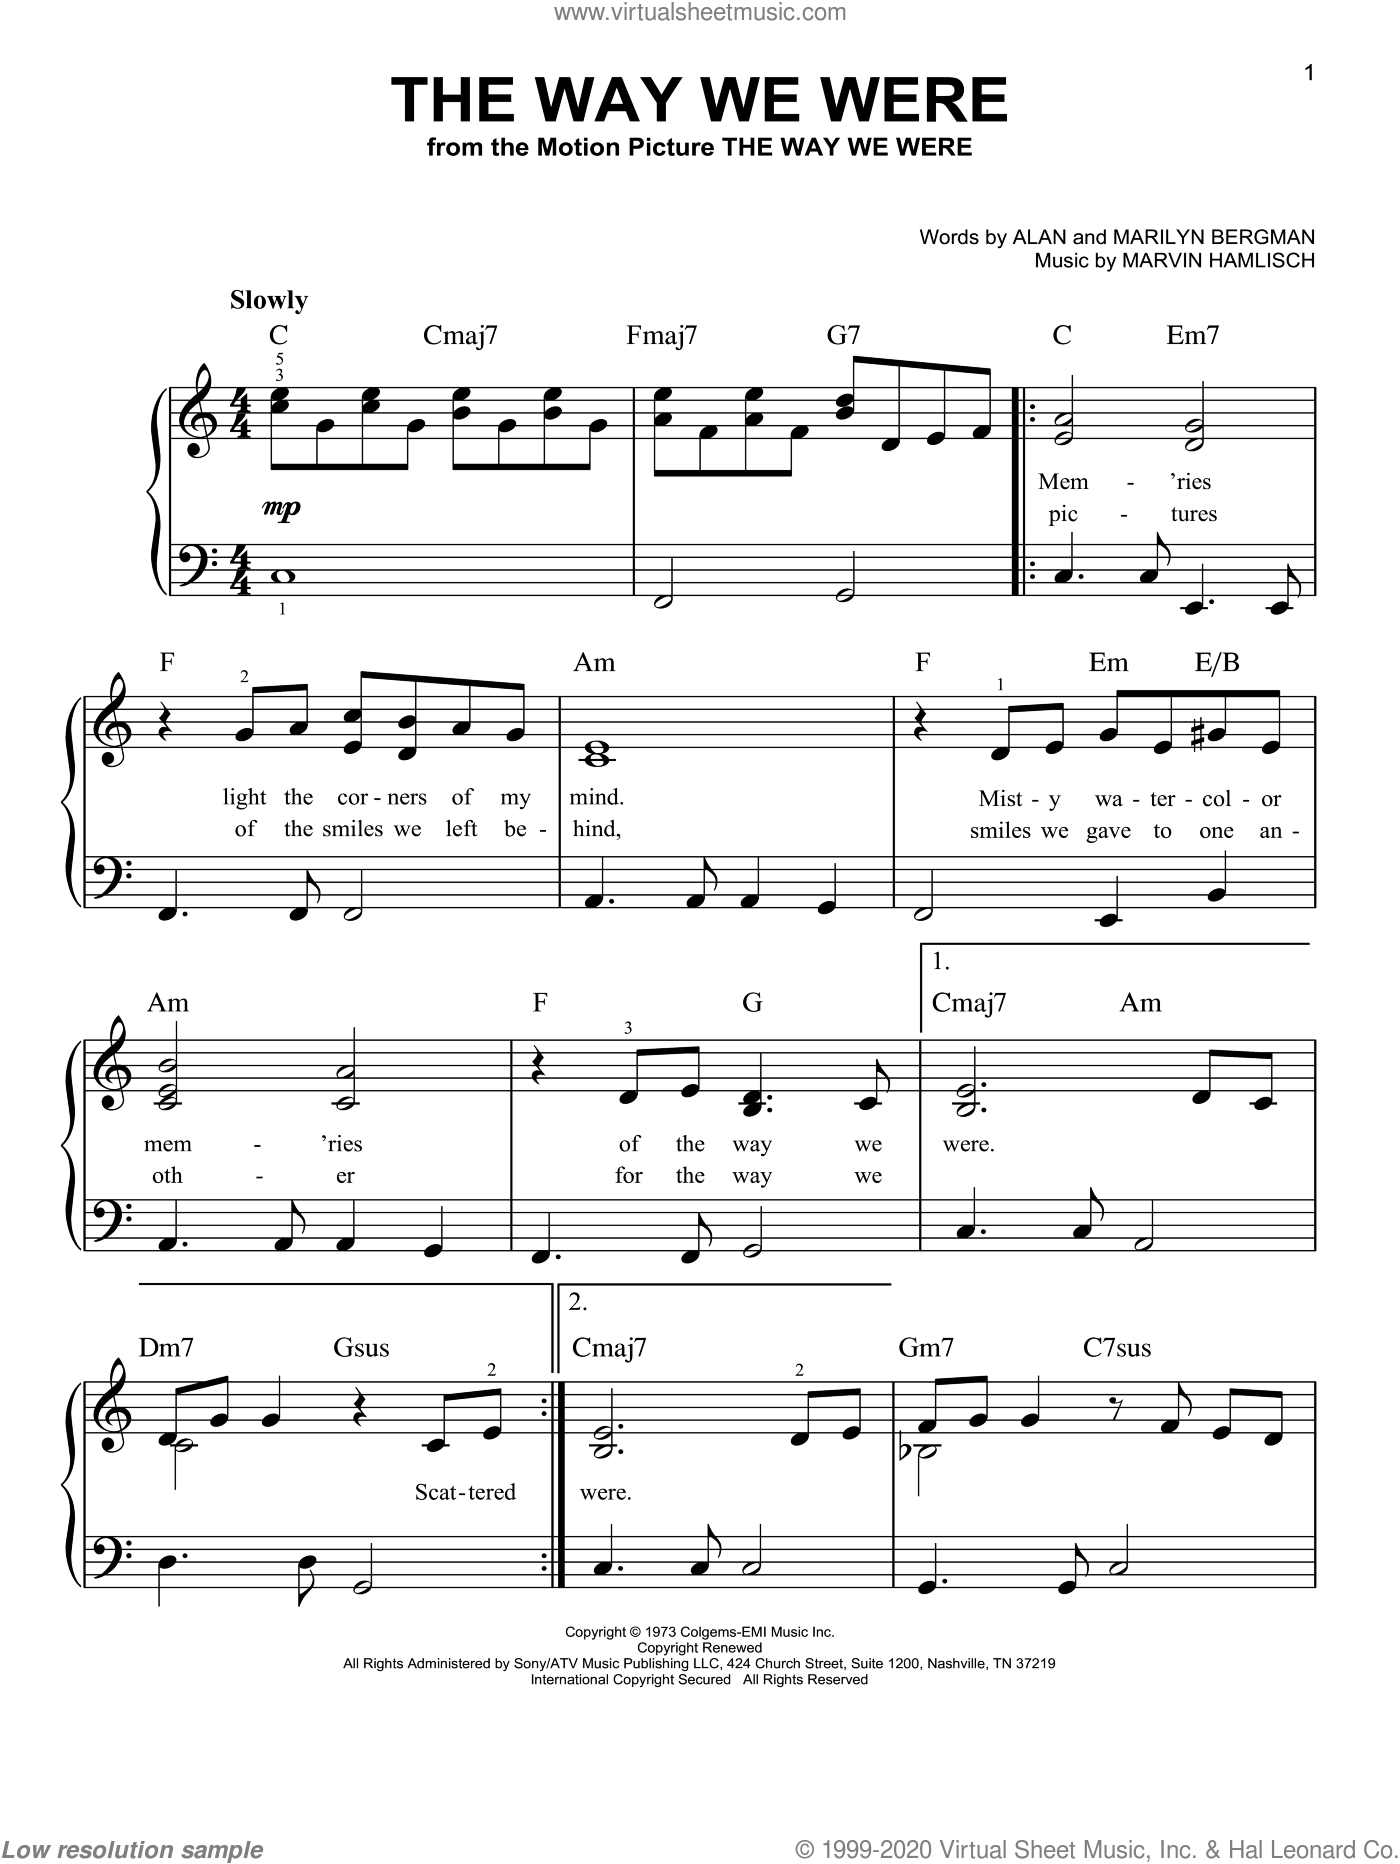 The Way We Were sheet music for piano solo (chords) by Marvin Hamlisch